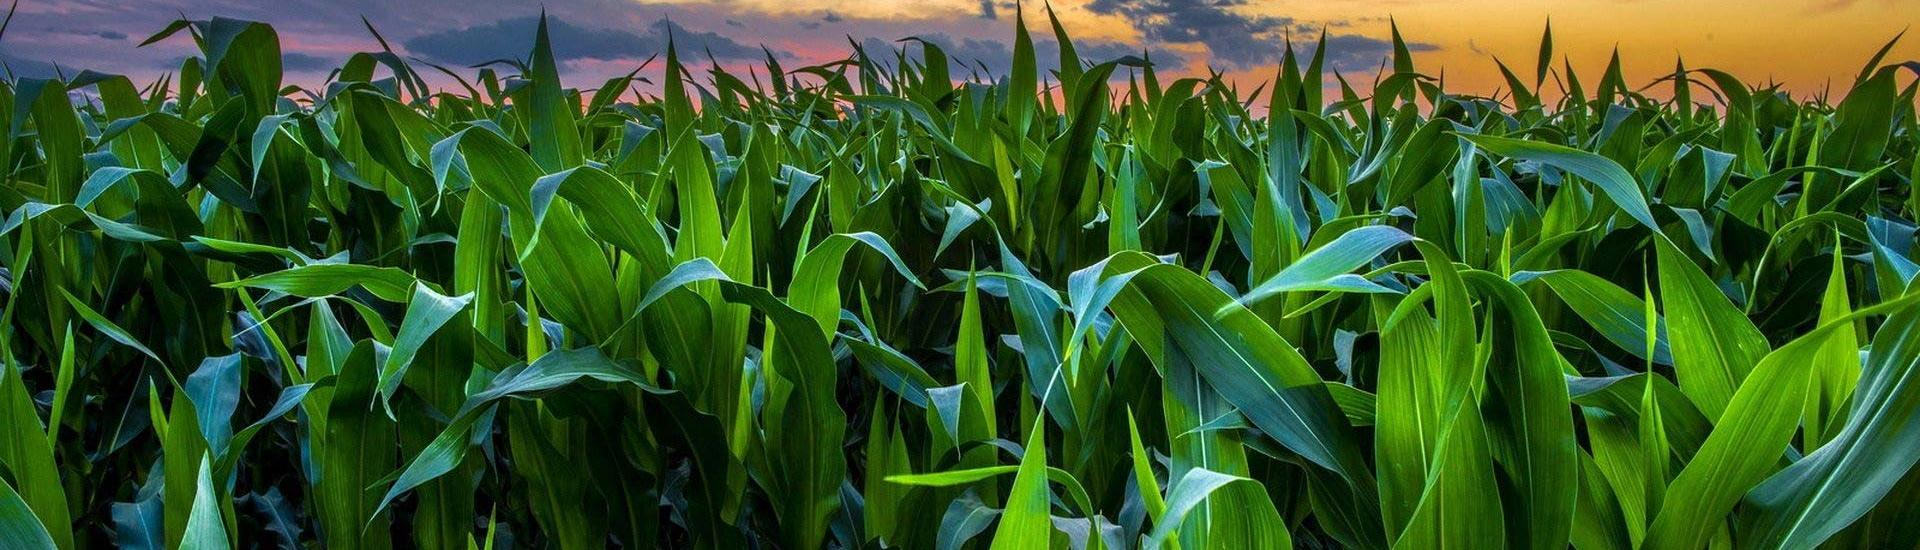 corn-field-green-nature-sunset-wallpaper.jpg